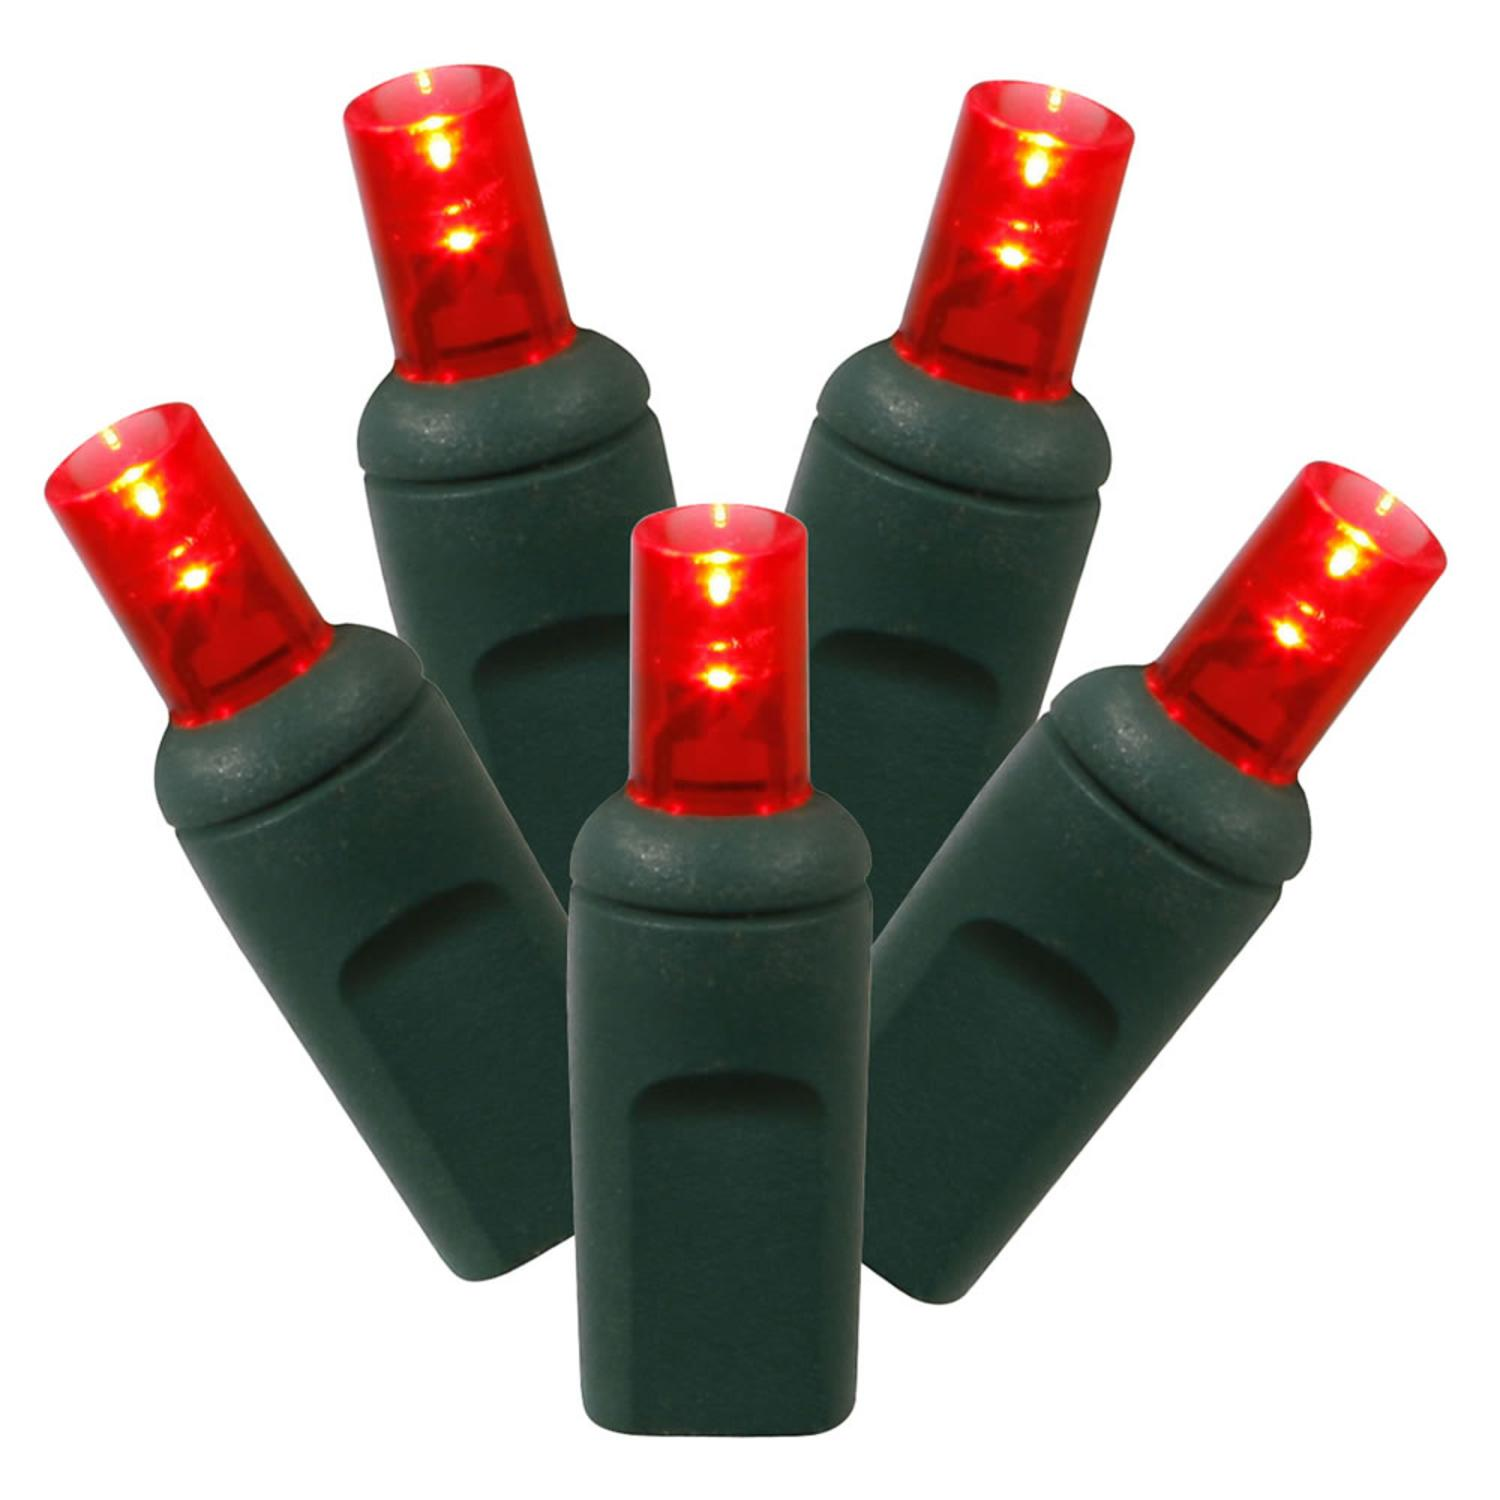 Set of 100 Red Commercial Grade LED Wide Angle Christmas Lights - Green Wire